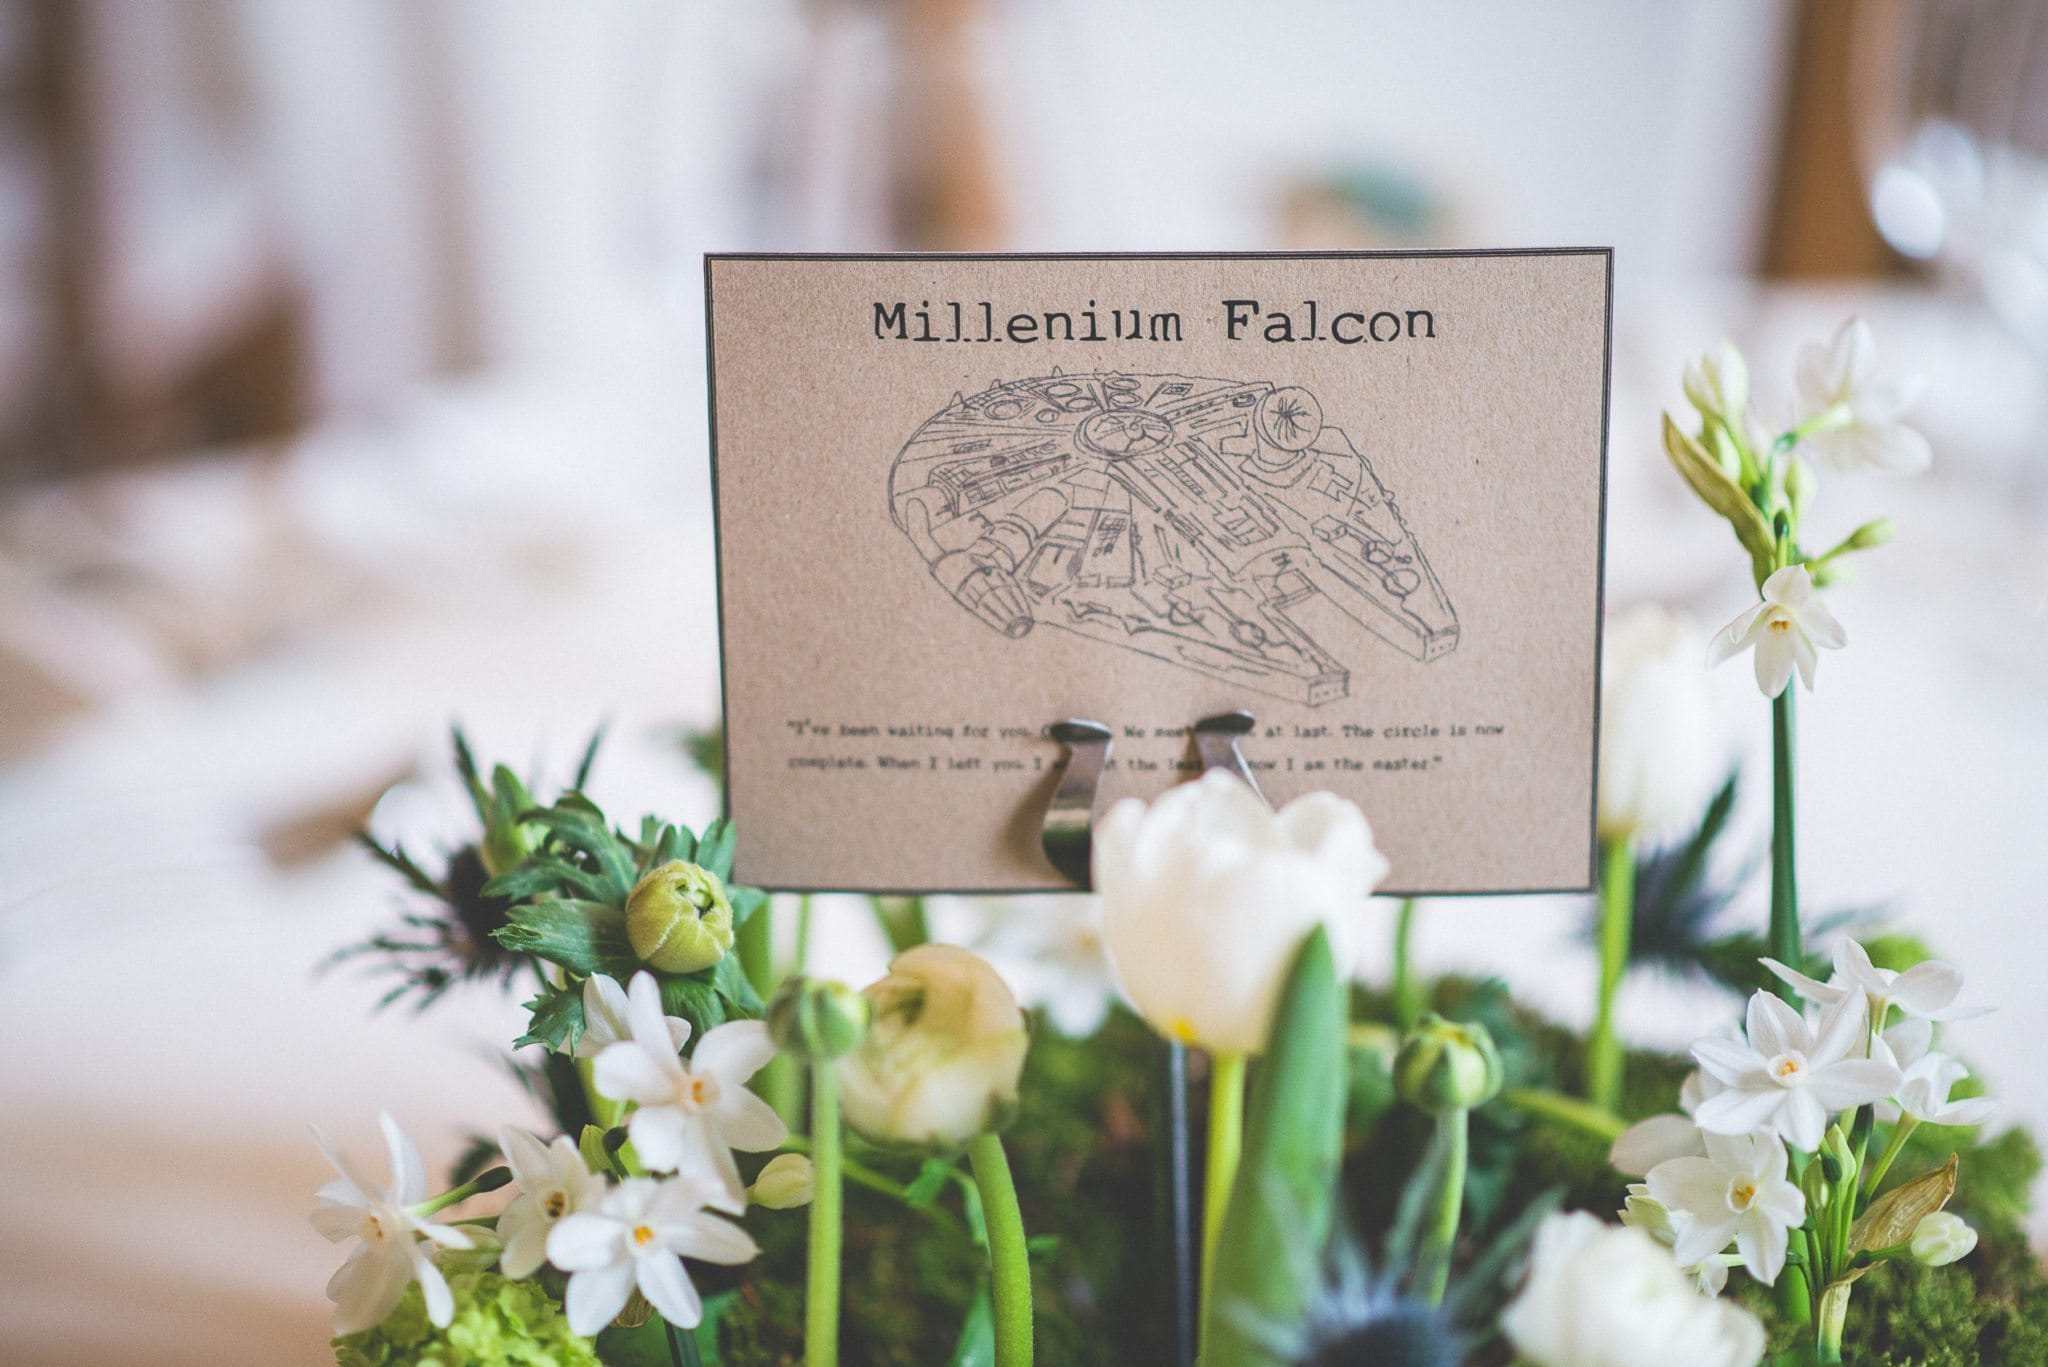 A close up of one of the table centres, showing the Millenium Falcon printed on rustic card among white flowers.